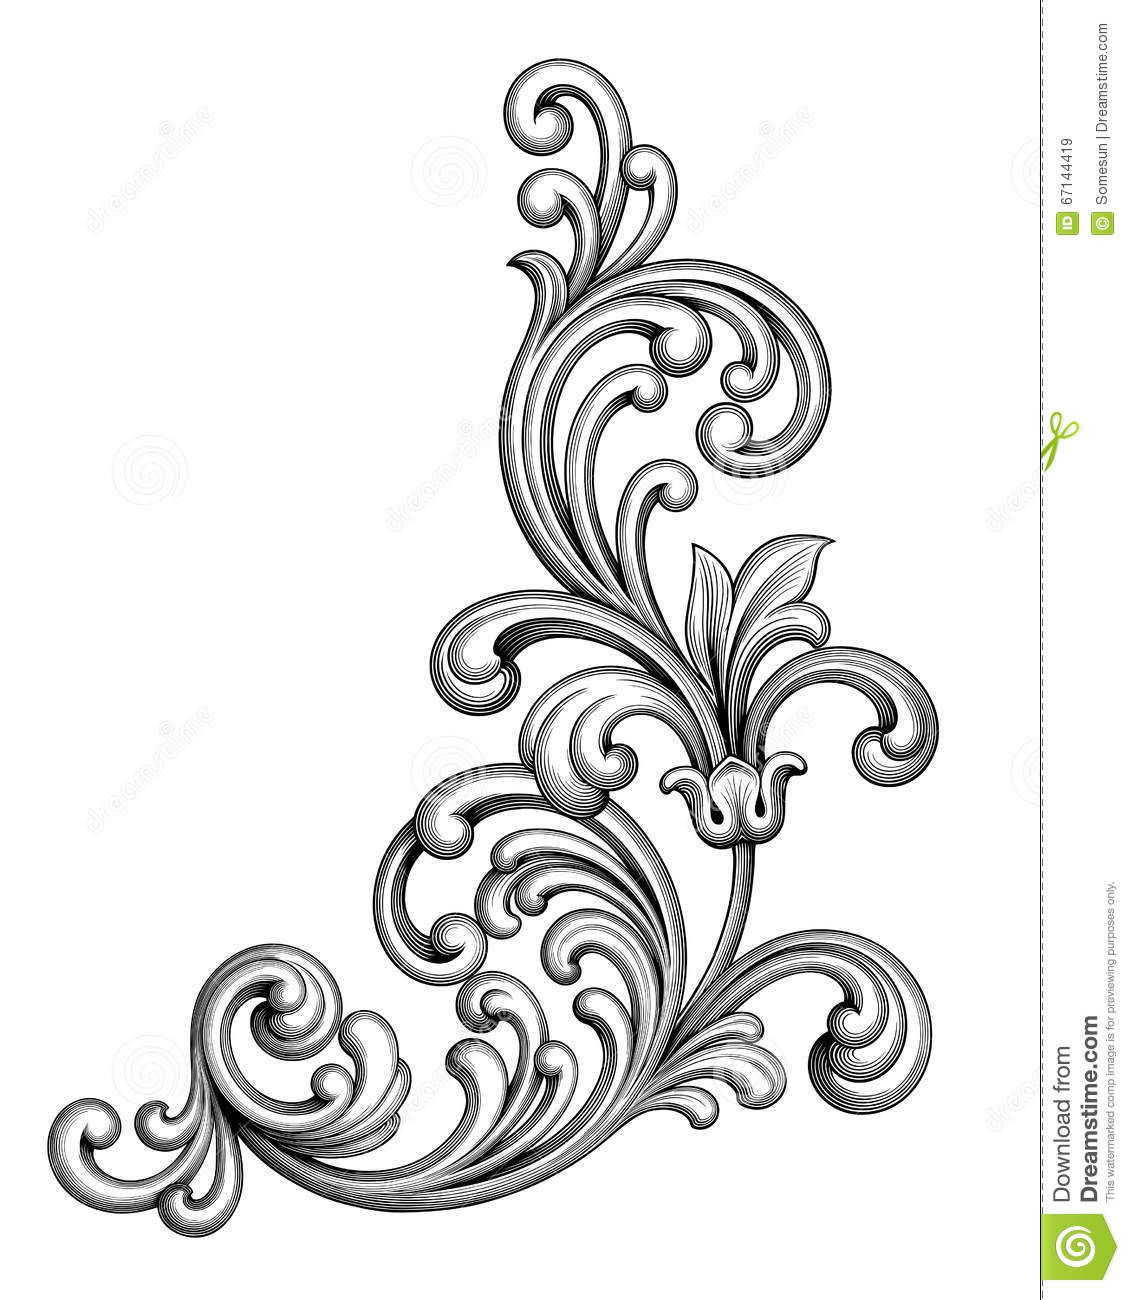 Engraving clipart ornament Scroll Border Ornament Victorian Baroque